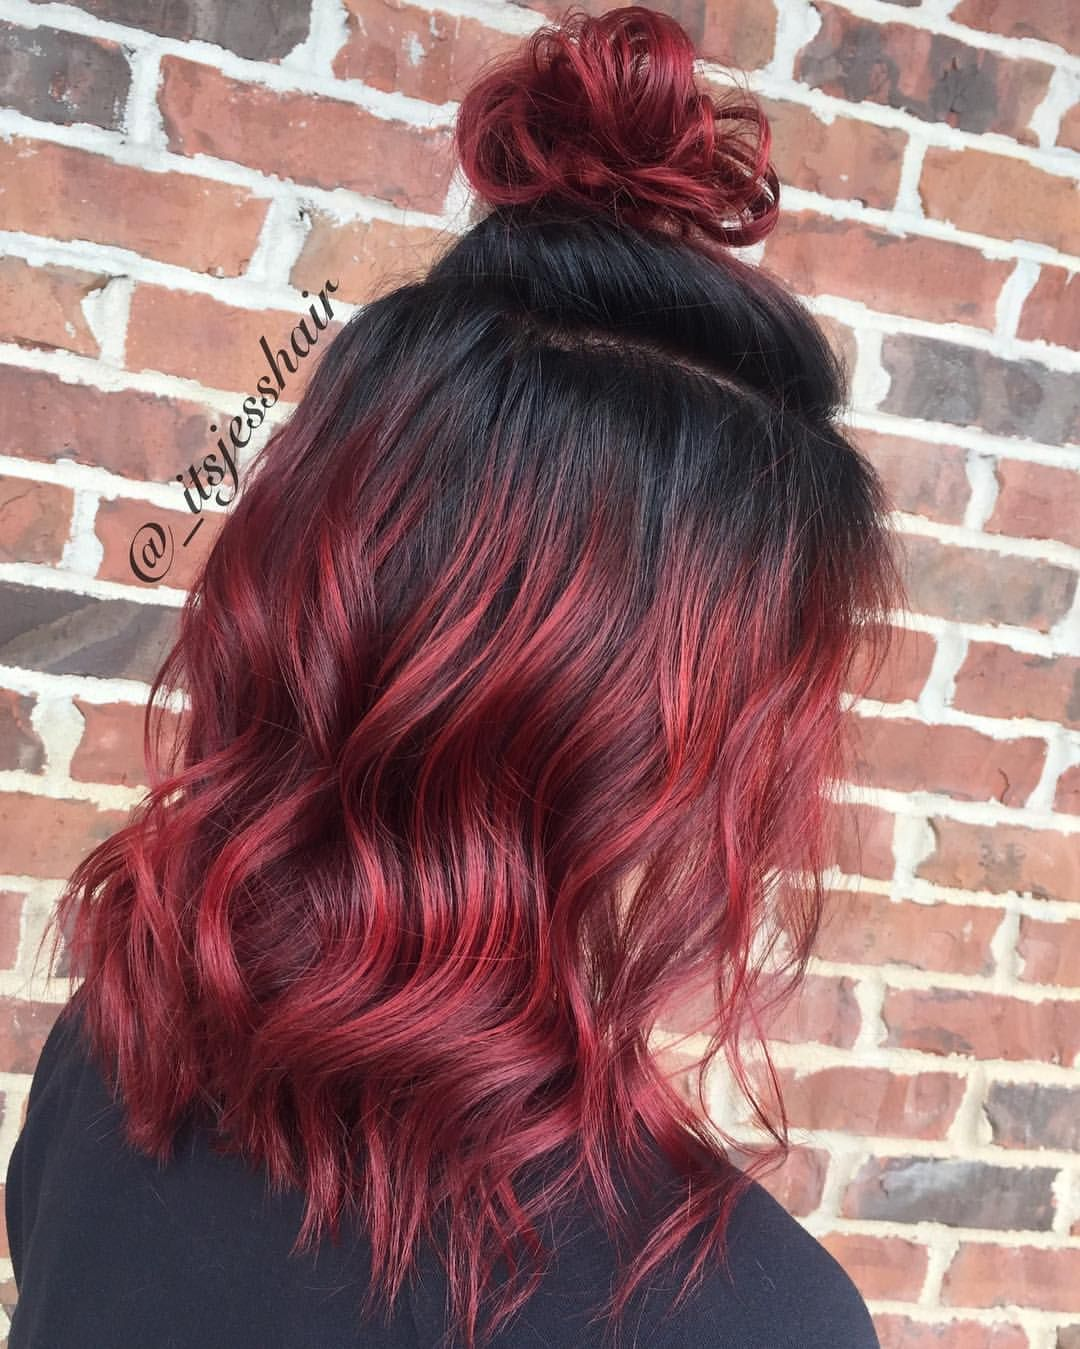 Red Hair With Shadow Root And Top Knot 54 Likes 2 Comments Jessica Knott Stylist Itsjesshair On Instagr Red Ombre Hair Burgundy Hair Brown Ombre Hair